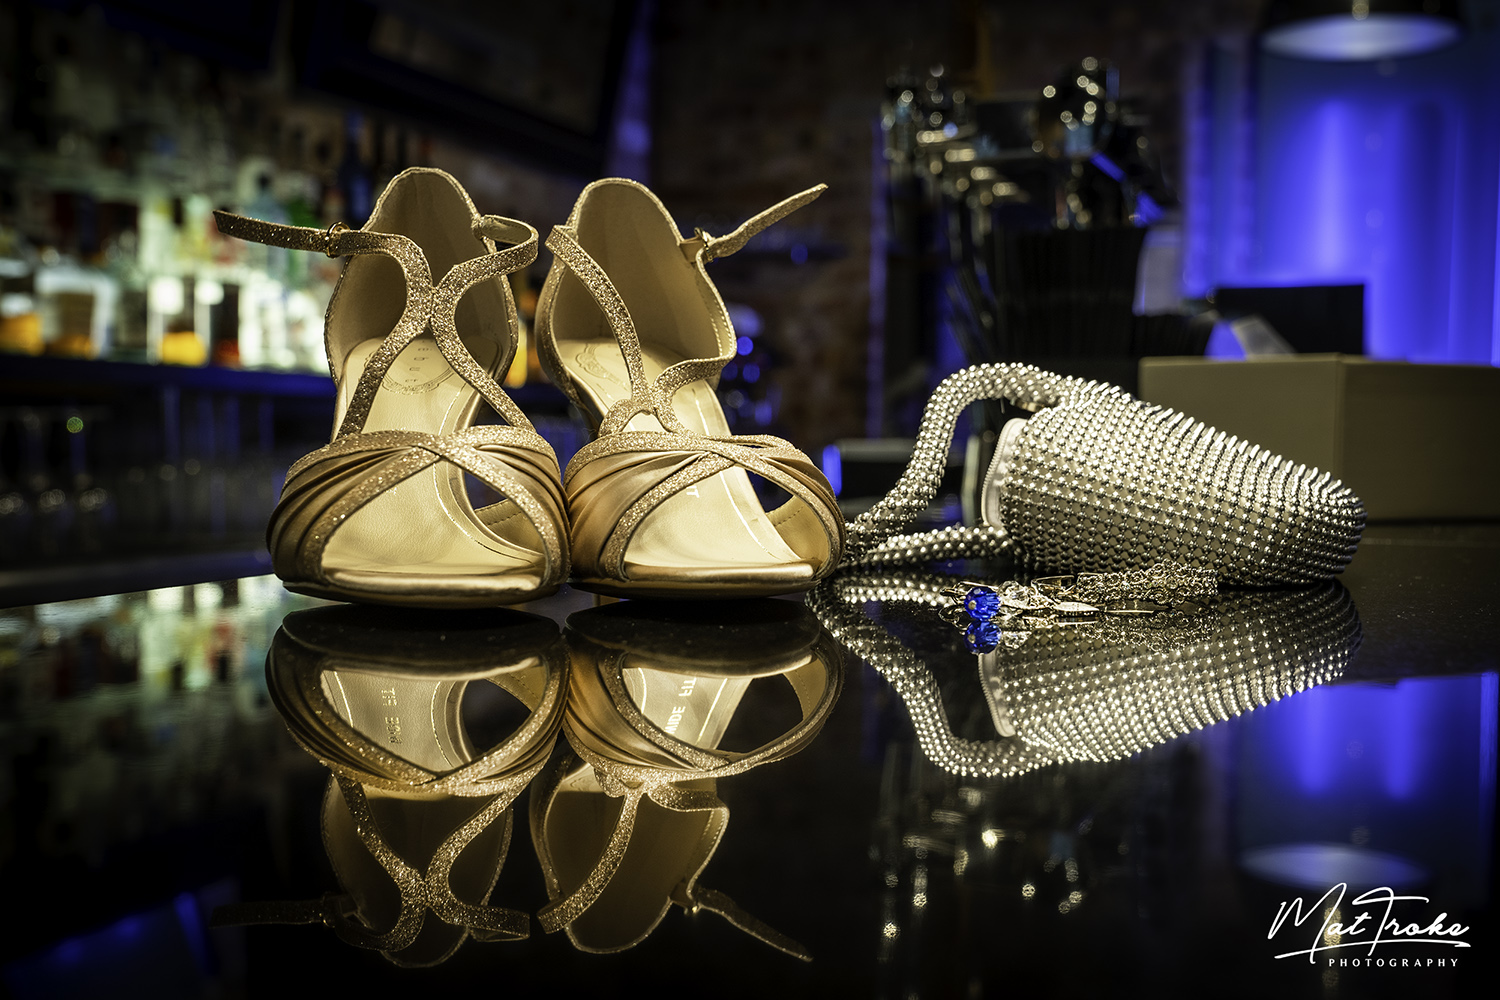 reflection_shoes_bride_wedding_photography_mour_hotel_dekota_photographer_mansfield_sherwood.jpg